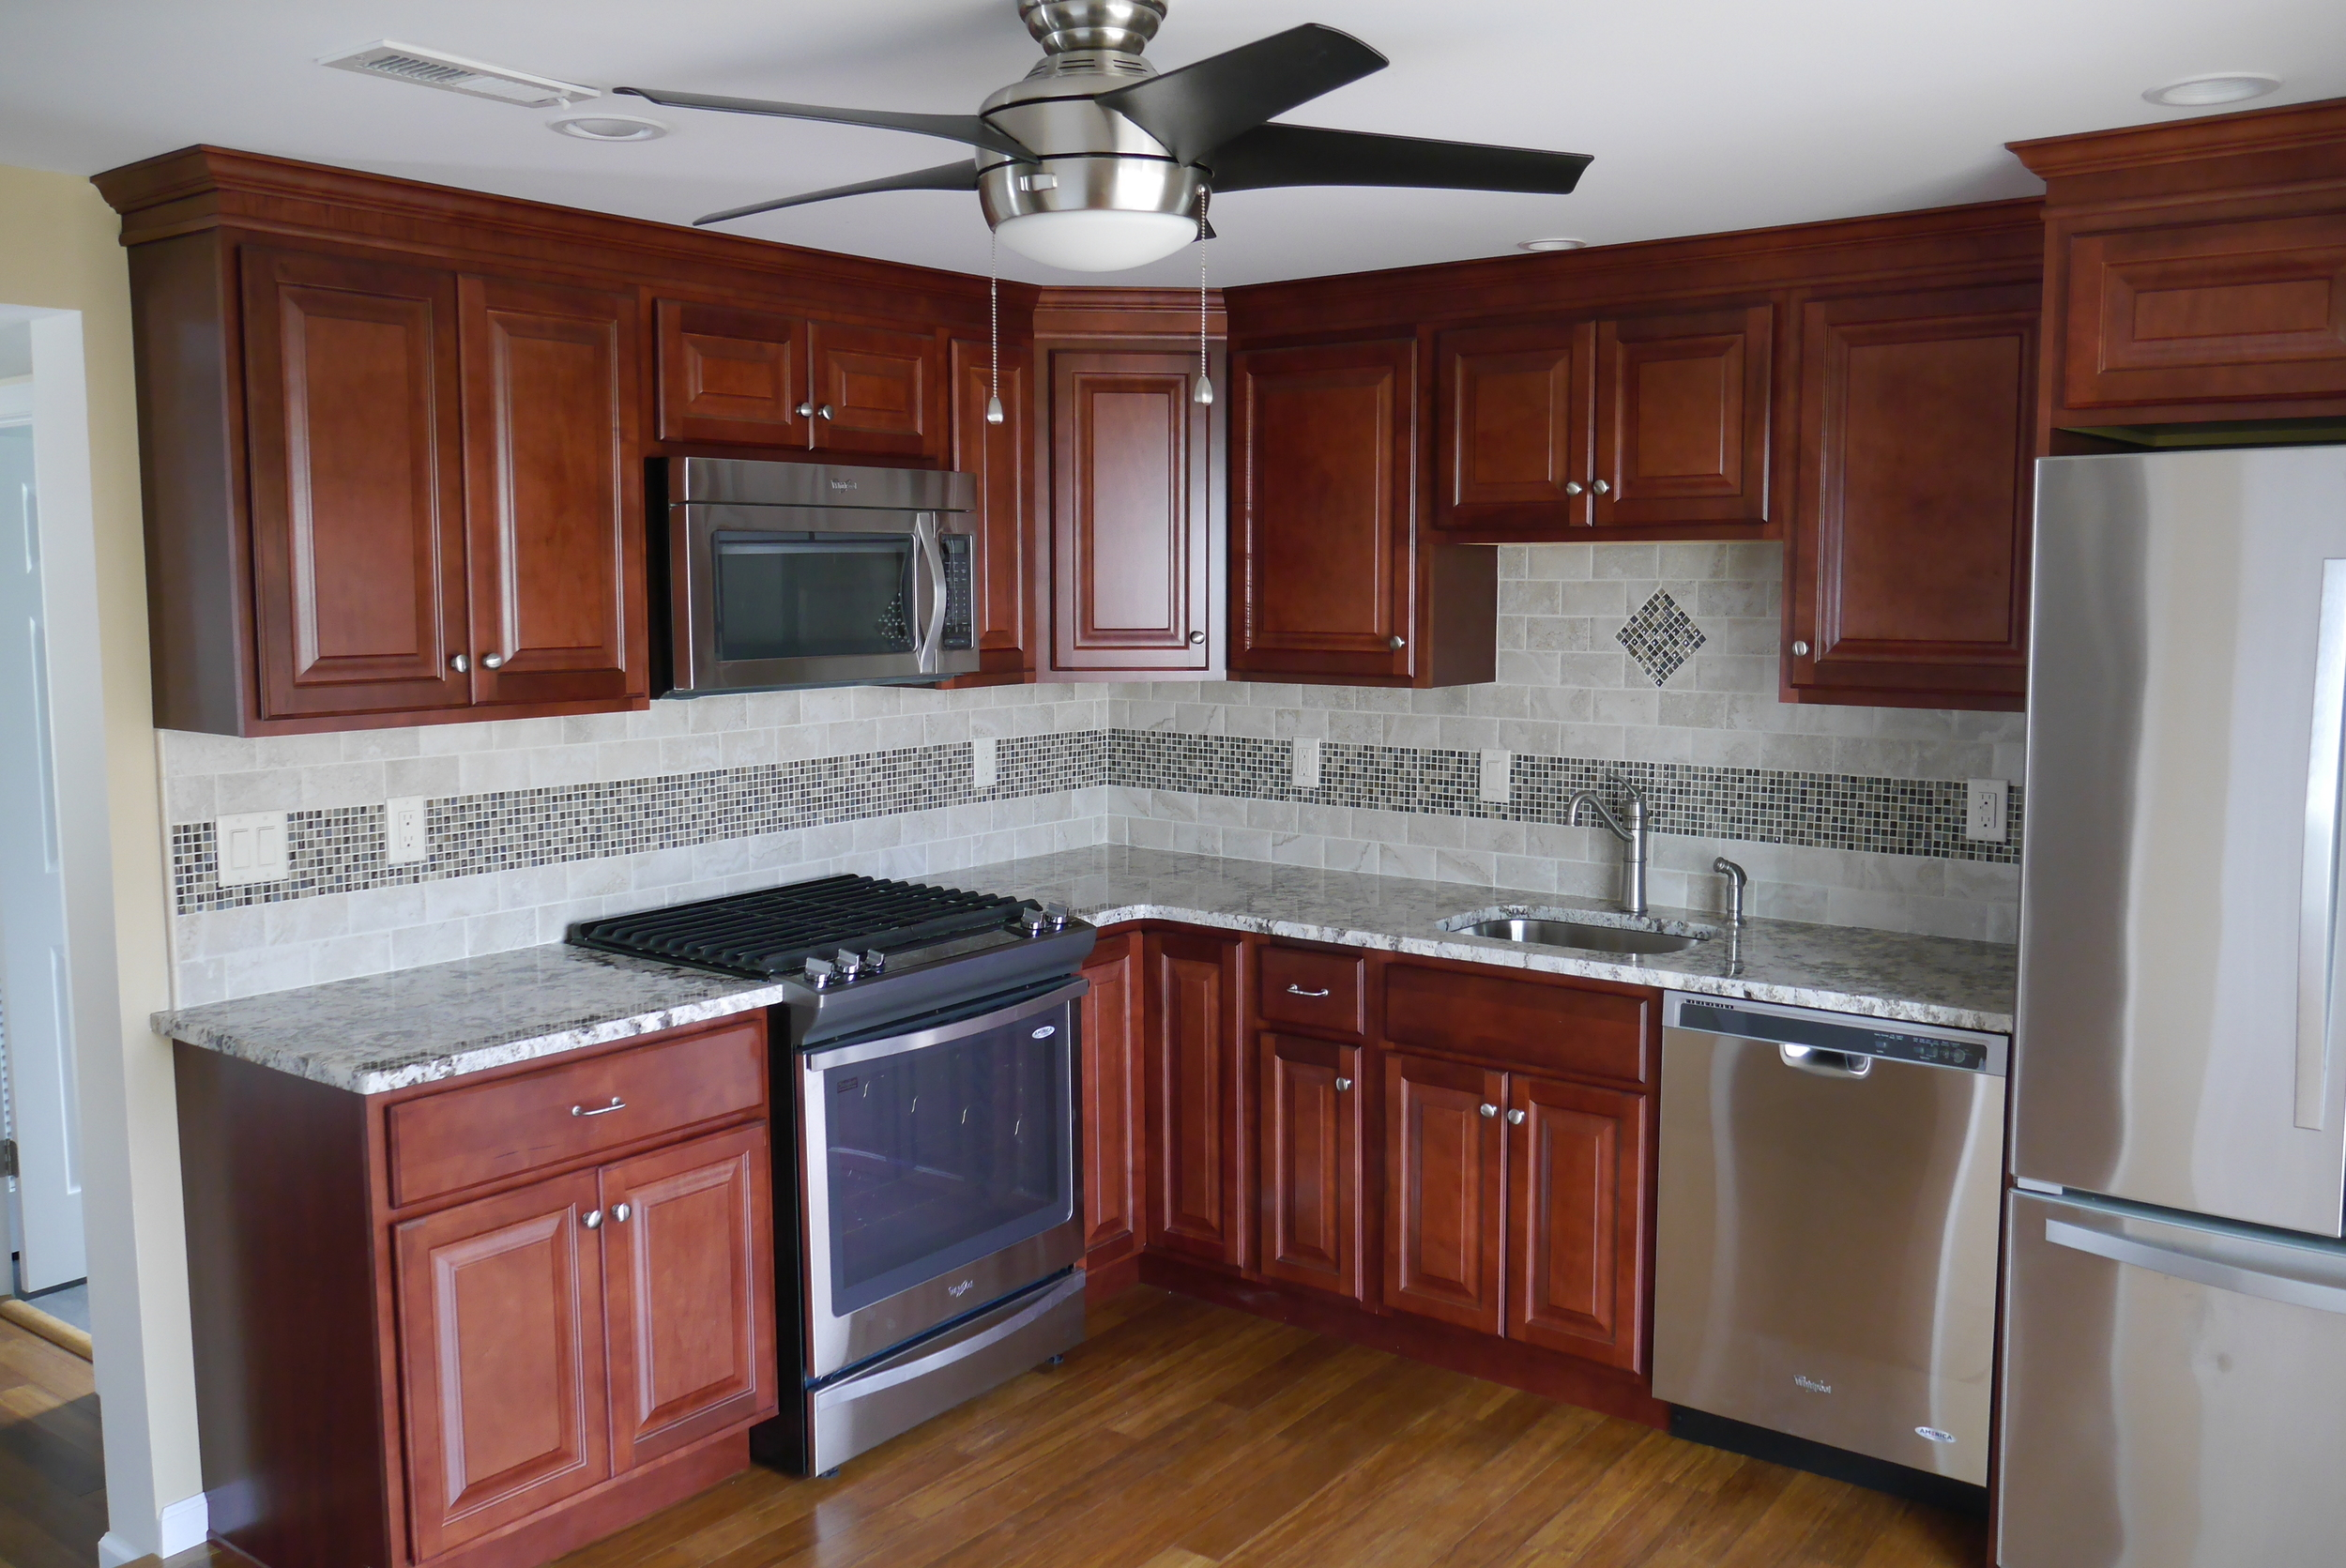 Fire damaged kitchen after restoration by Groundswell Contracting